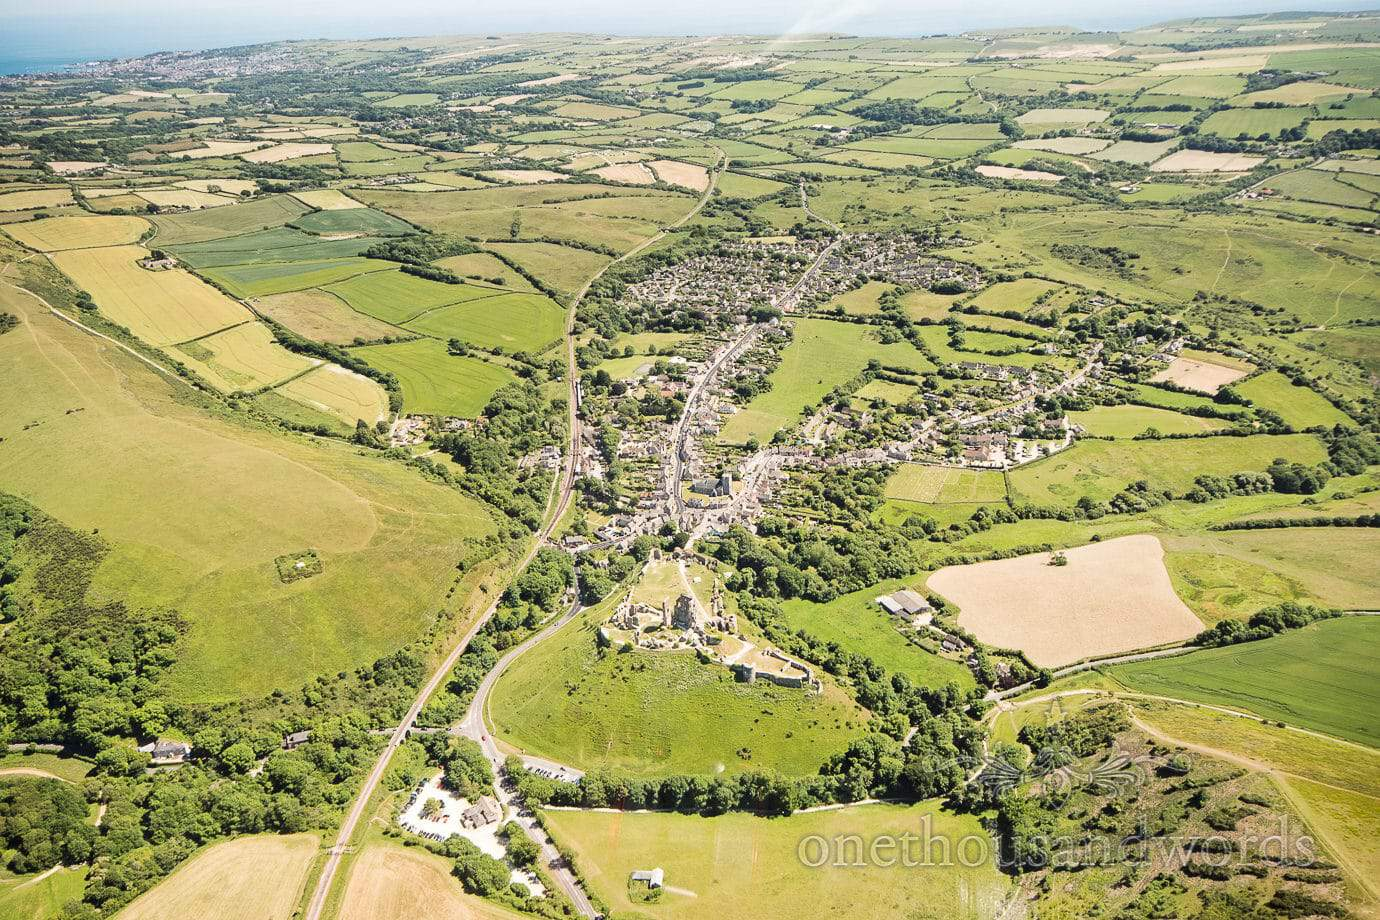 Aerial wedding photograph of Corfe Castle and Dorset countryside from wedding helicopter